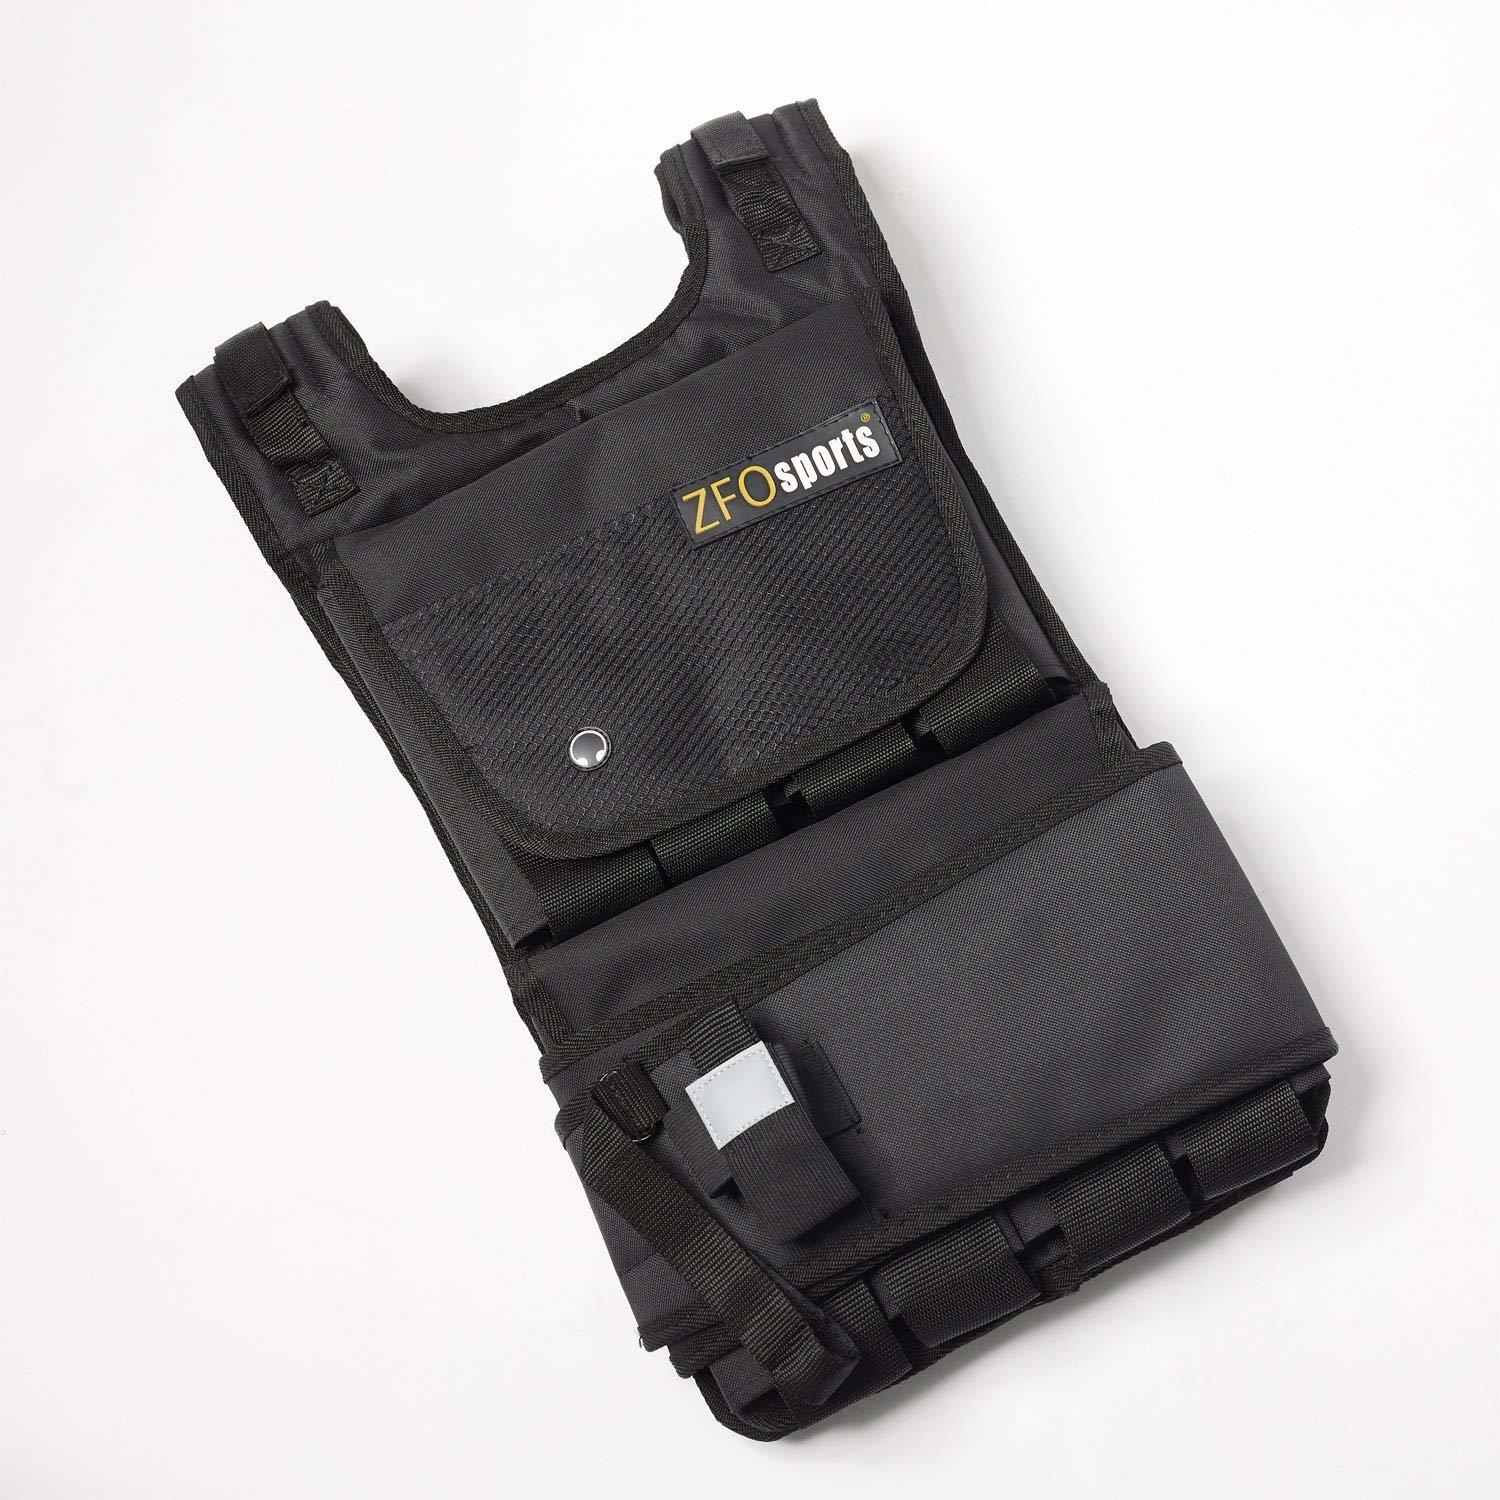 4 best weighted vests for running and crossfit that will change the way U train 7